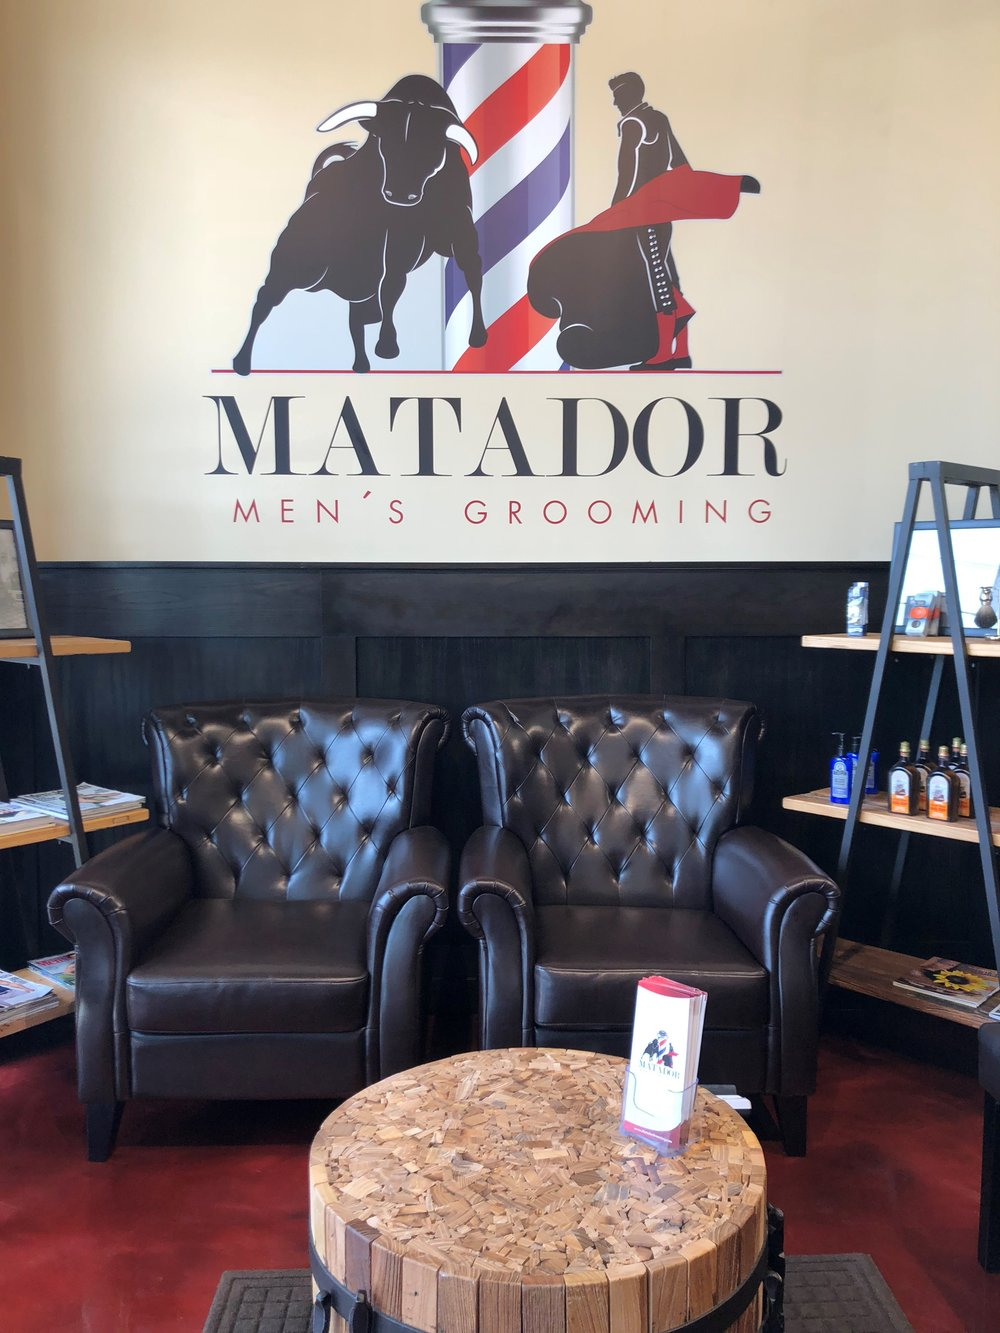 MATADOR MEN'S GROOMING | OAK RUN NEW BRAUNFELS